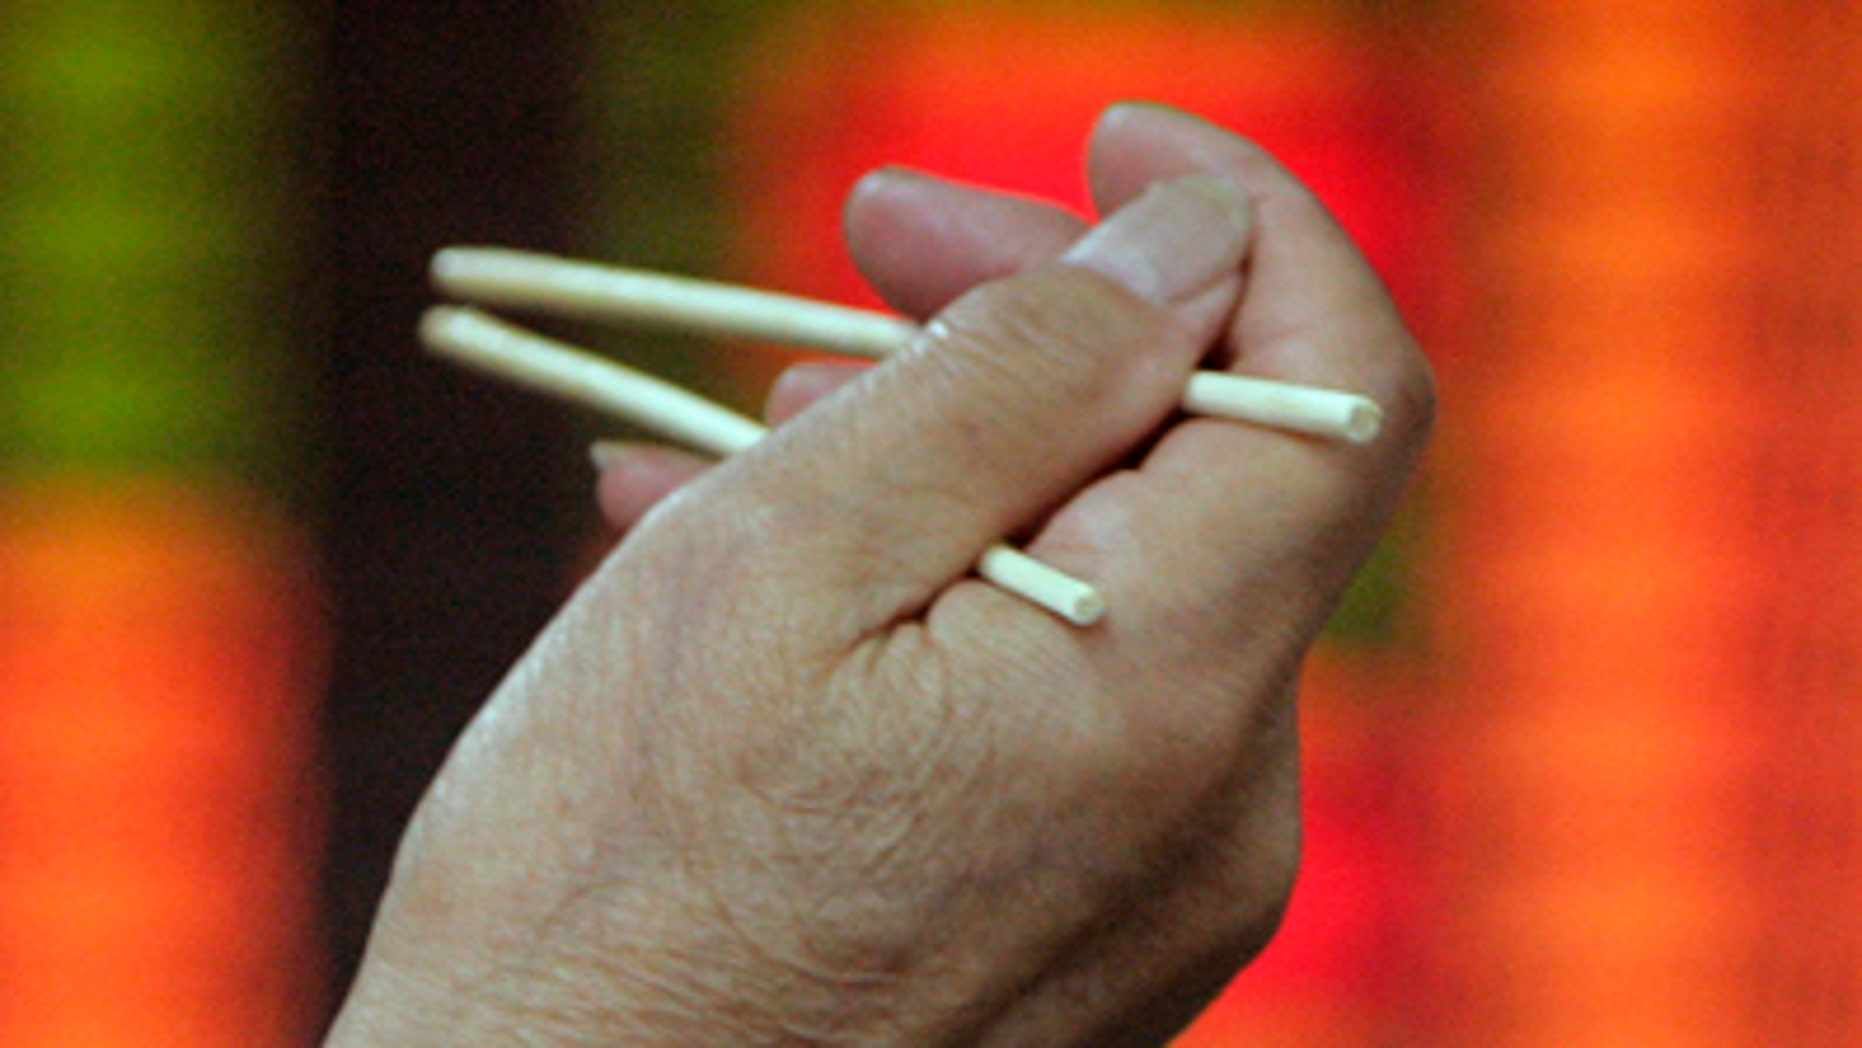 An investor holding a pair of chopsticks has his lunch in front of an electronic board at the stock exchange in Shanghai June 4, 2007. China's main stock index tumbled more than 7 percent on Monday, adding to big losses suffered last week after the government hiked the share trading tax to cool speculation. REUTERS/Aly Song (CHINA)Also see RTR1RHDZ